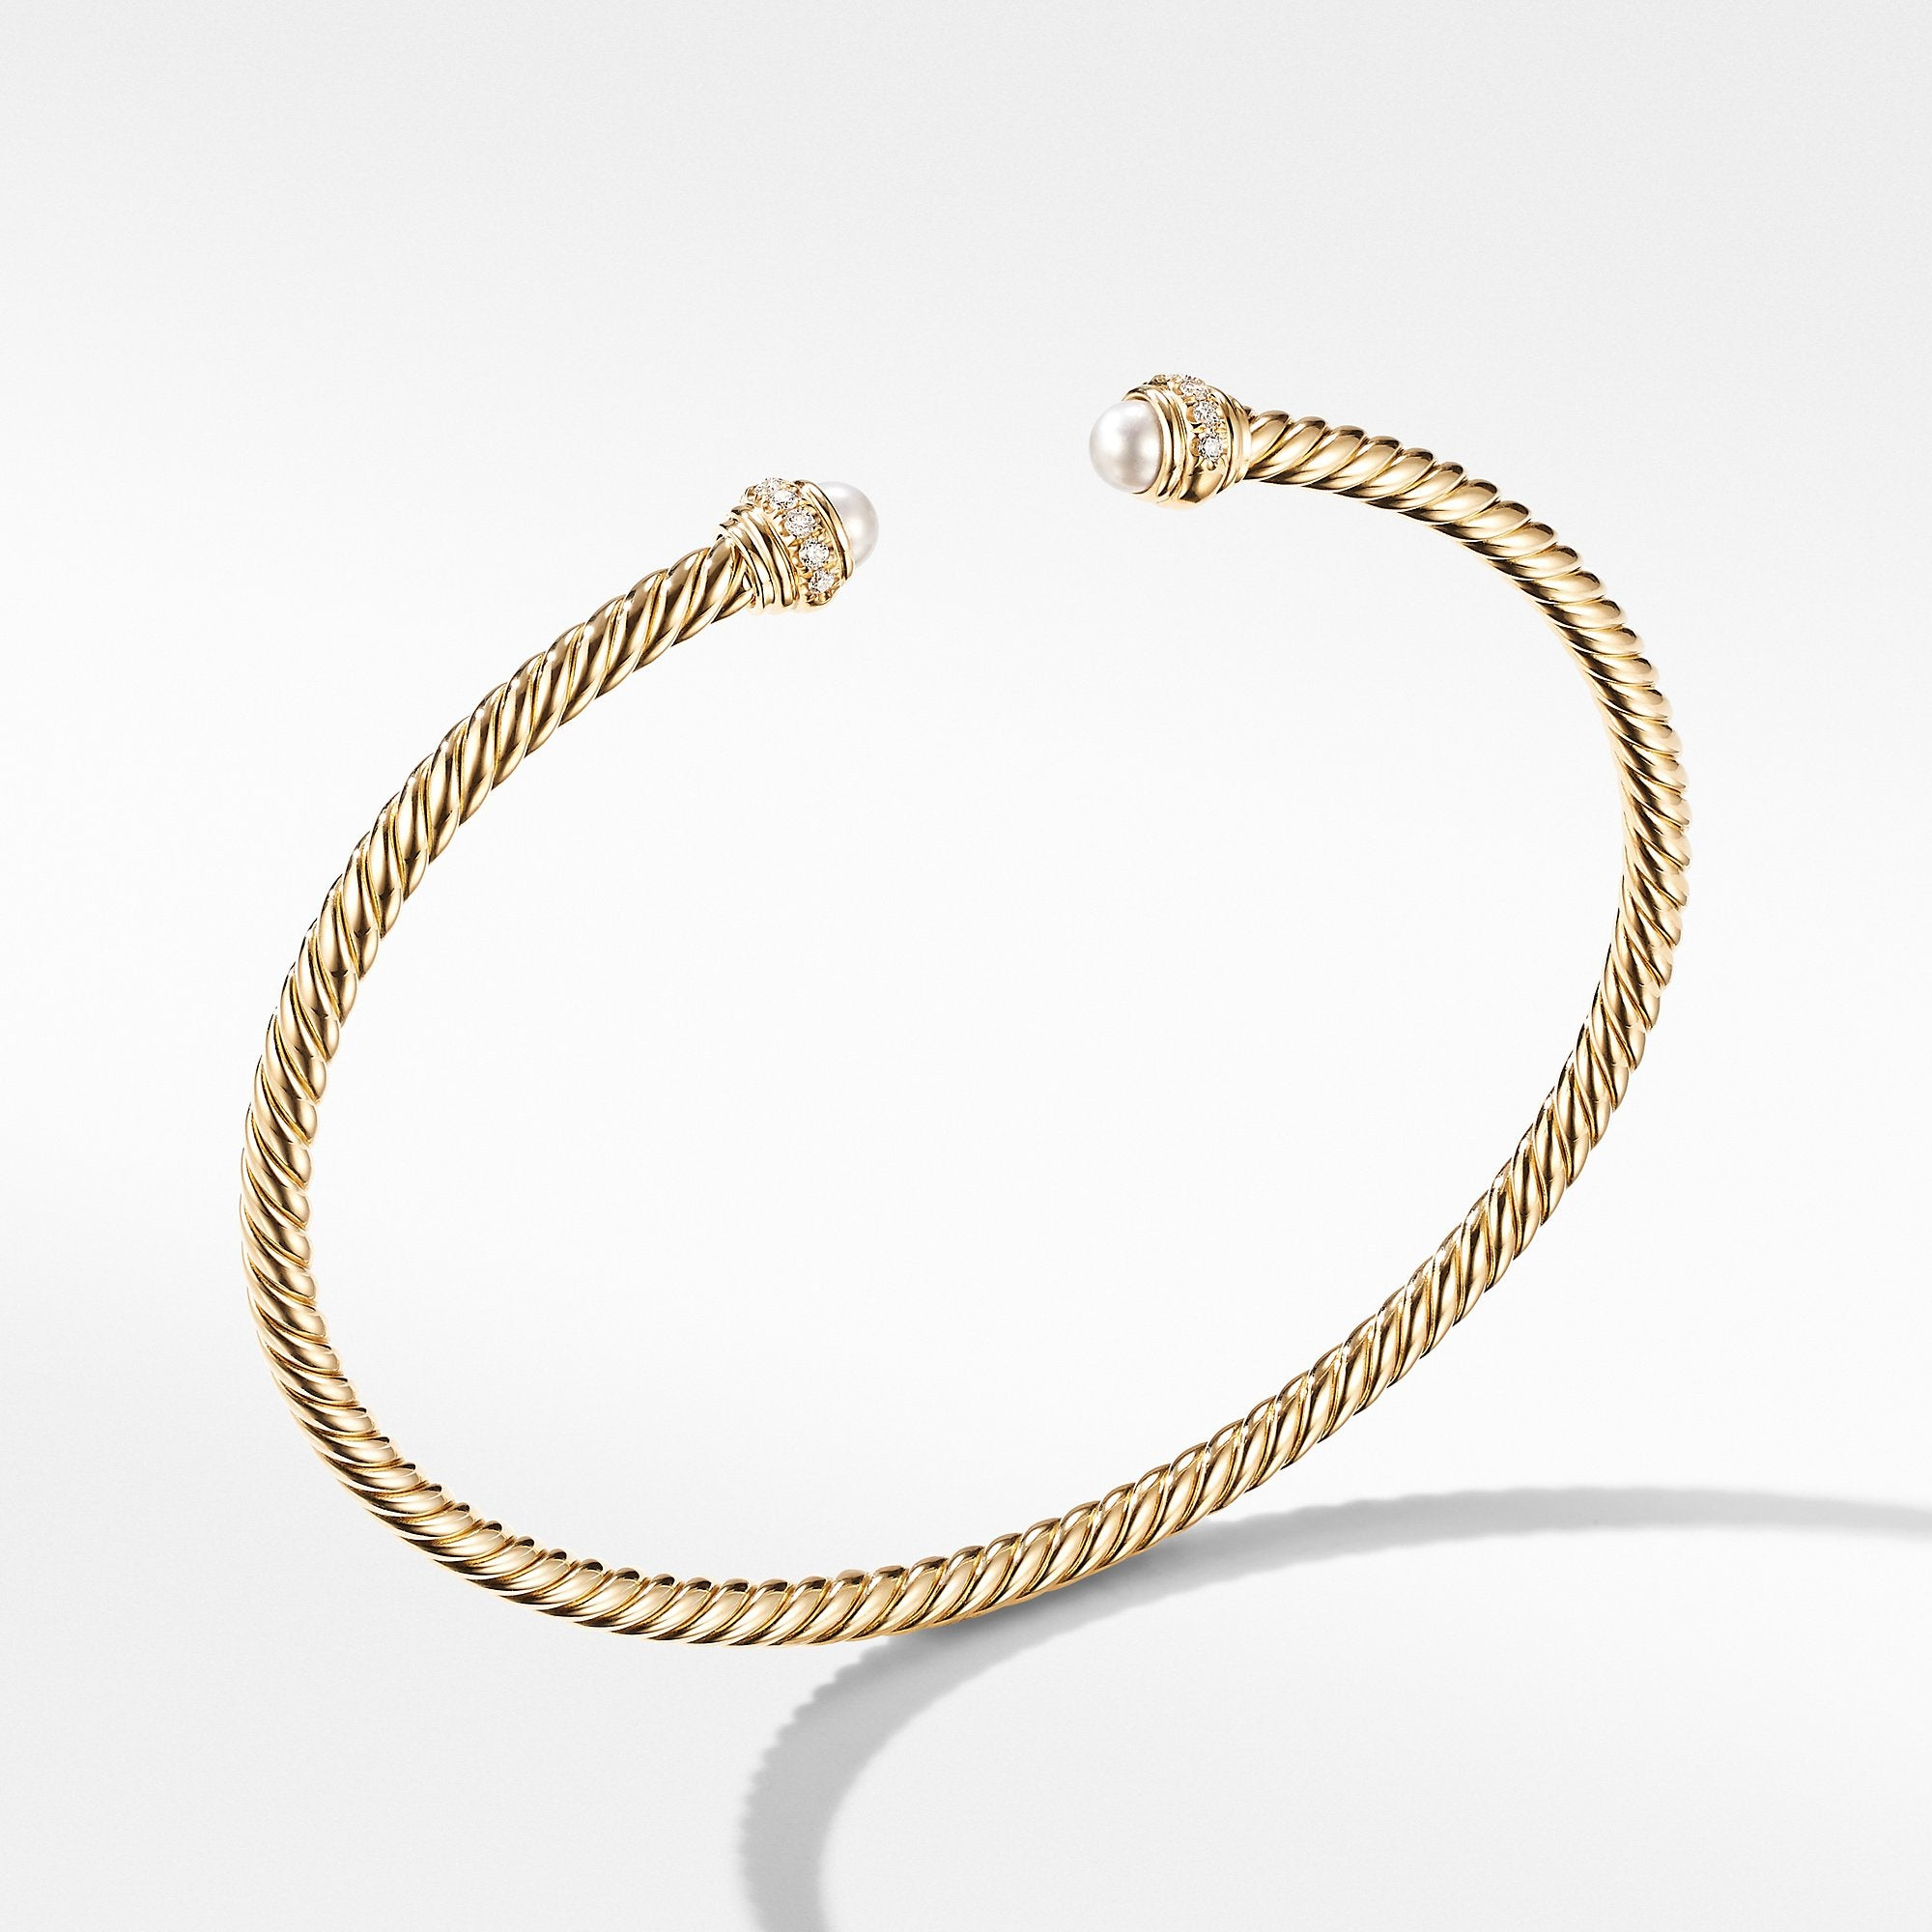 Cable Spira Bracelet in 18K Yellow Gold with Pearls and Diamonds